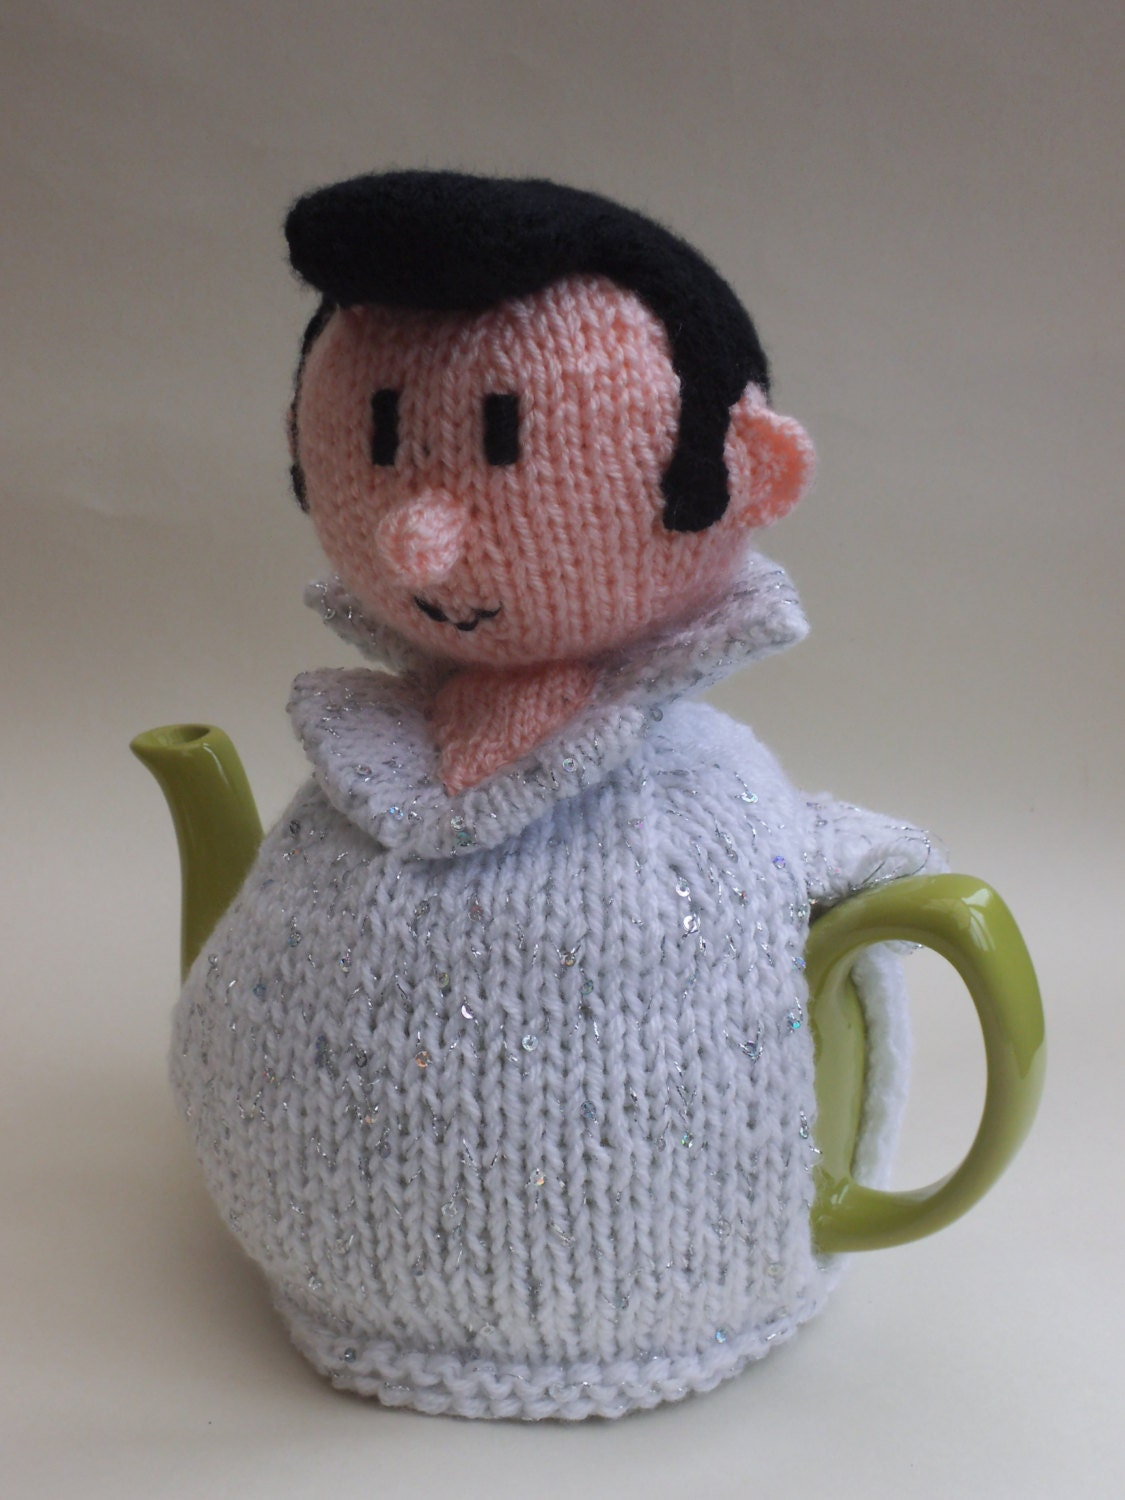 Patterns For Tea Cosy To Knit : Elvis Presley Tea Cosy Knitting Pattern to Knit Your Own Elvis